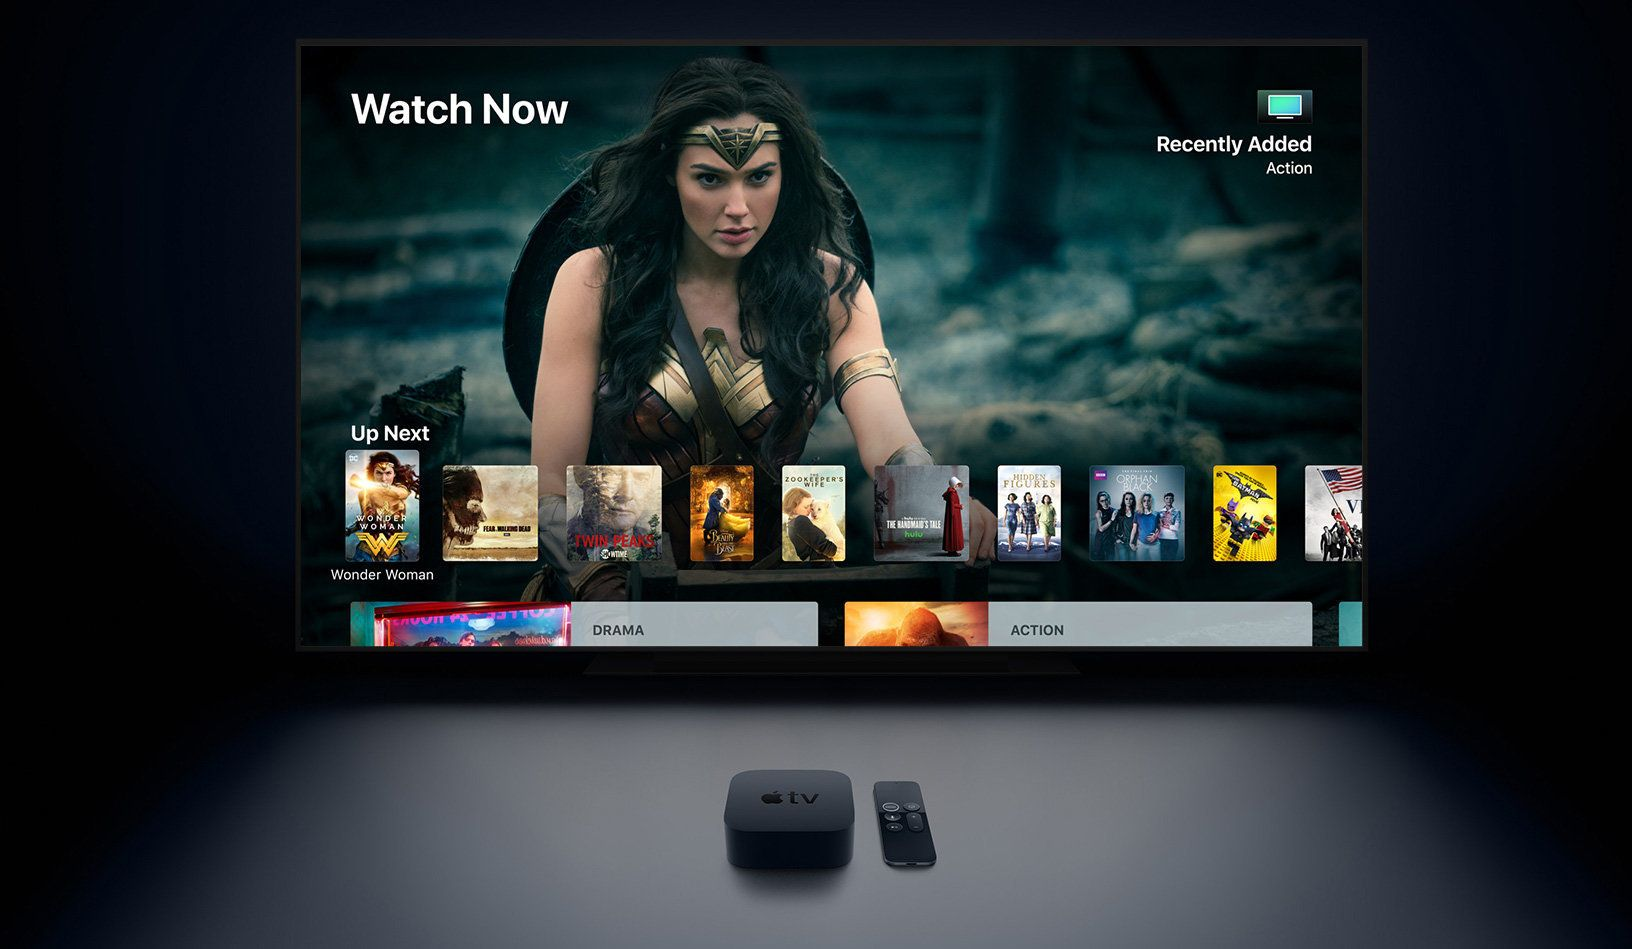 Apple TV 4K lands on September 22nd for $179